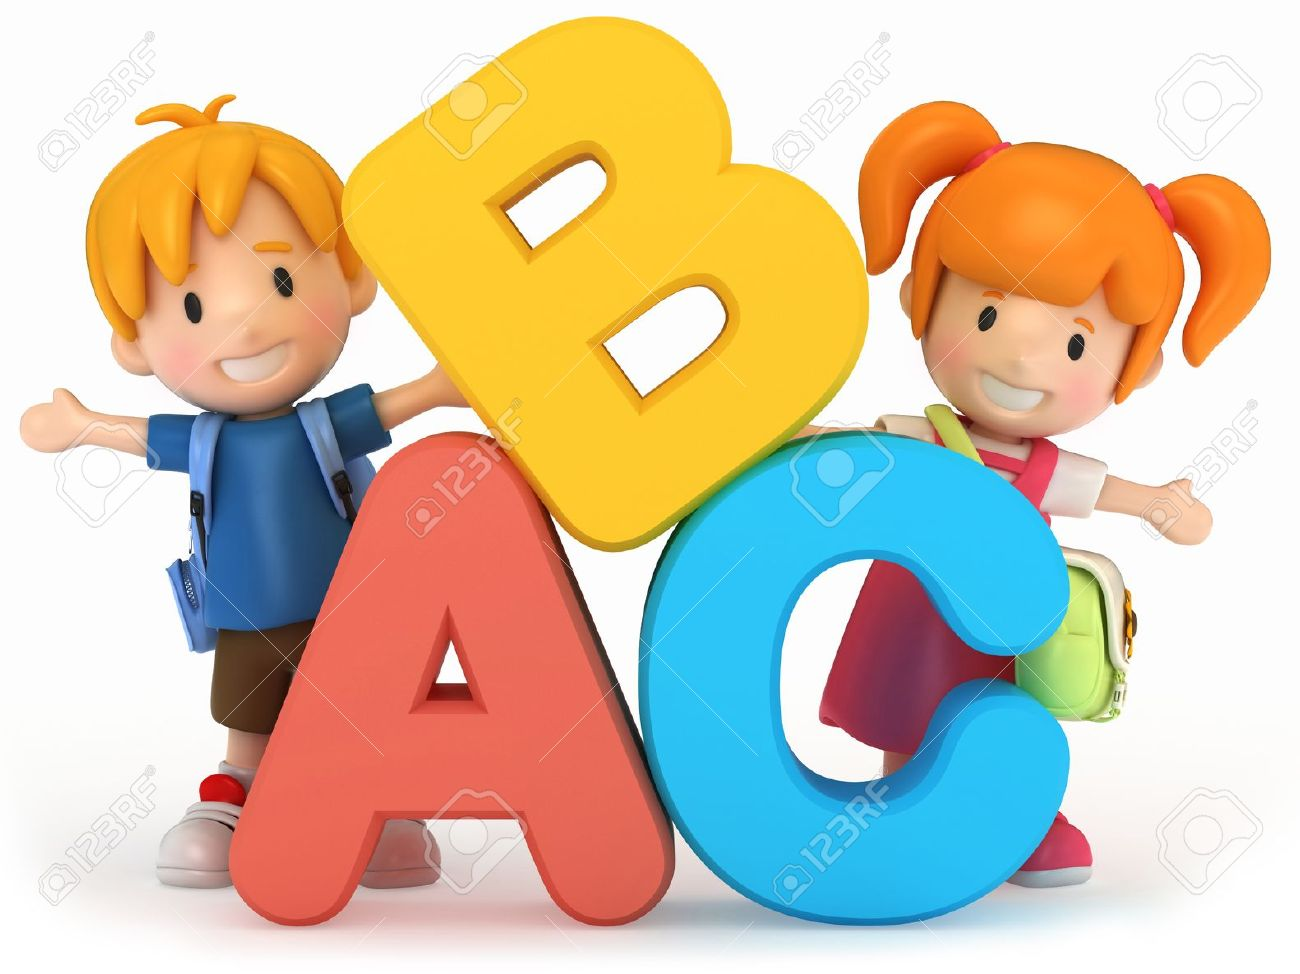 Kids learning abc clipart royalty free Abc kids clipart - ClipartFest royalty free